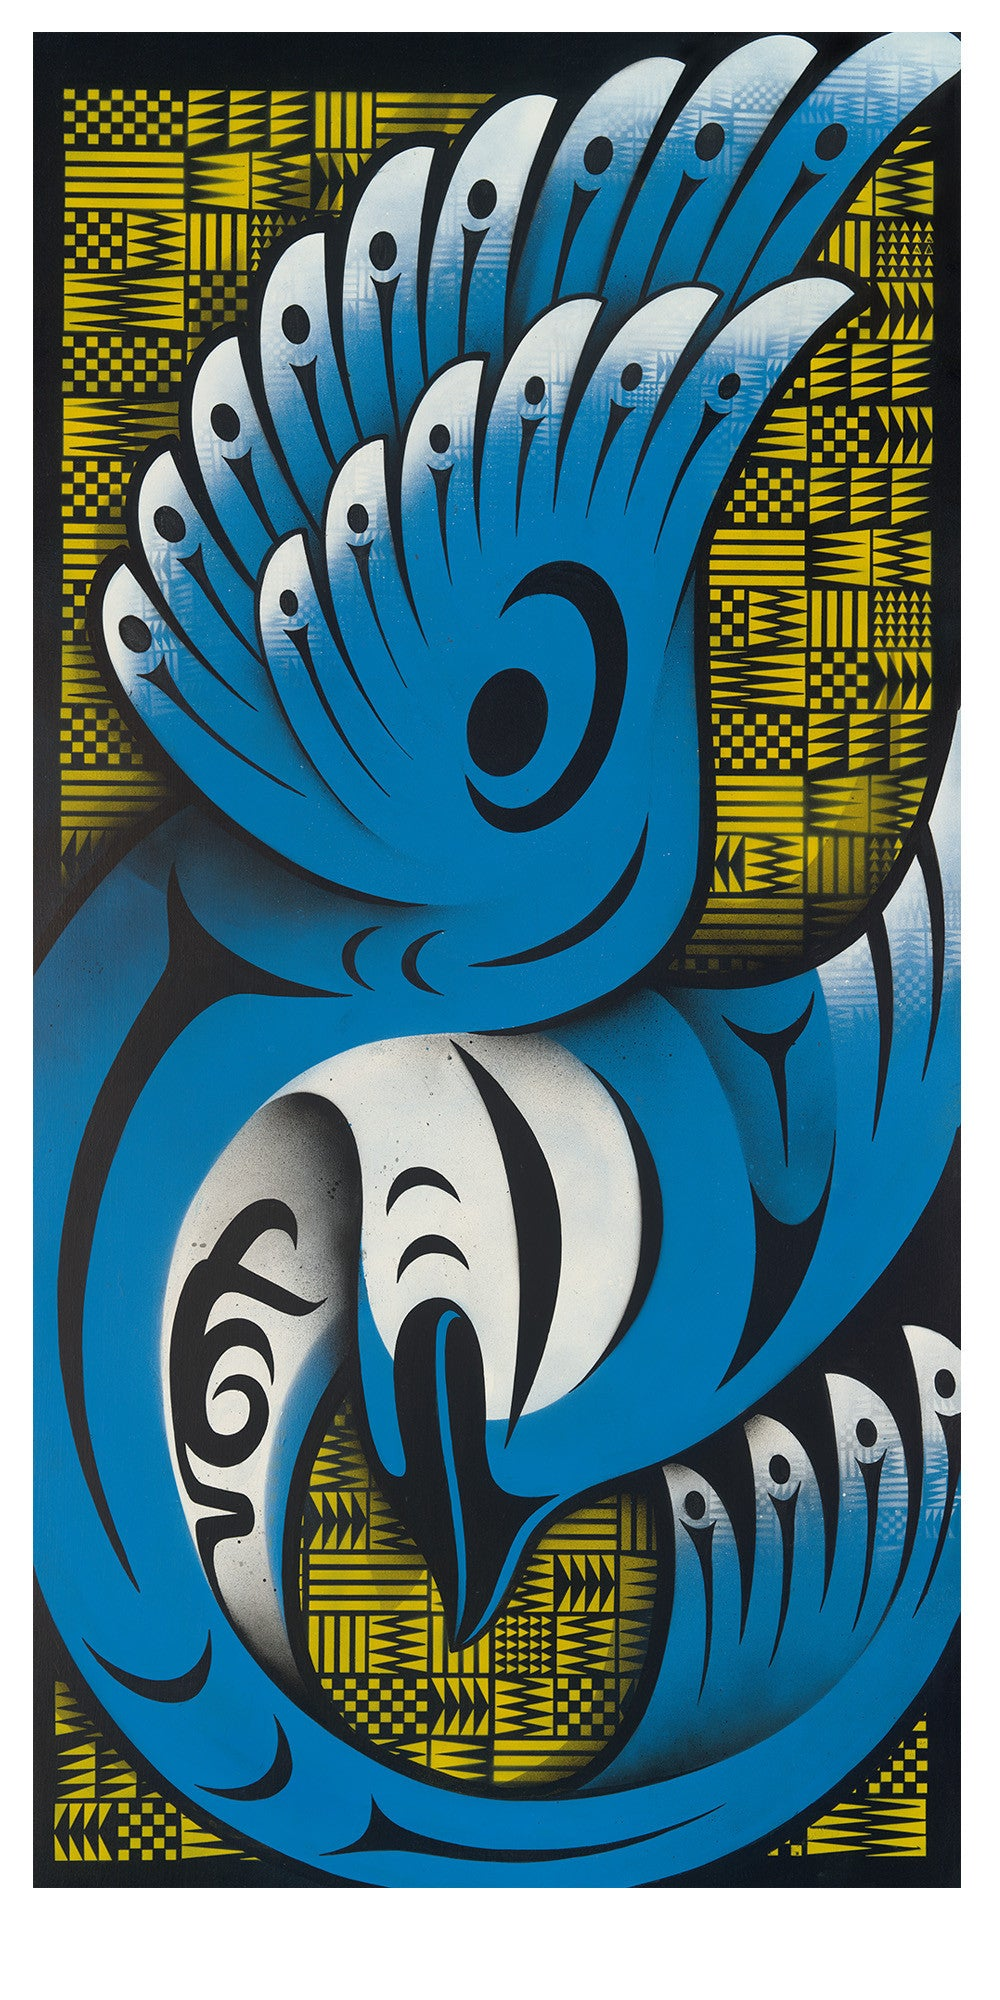 Blue Jay limited edition Giclee print by Nooksack Native artist Louie Gong